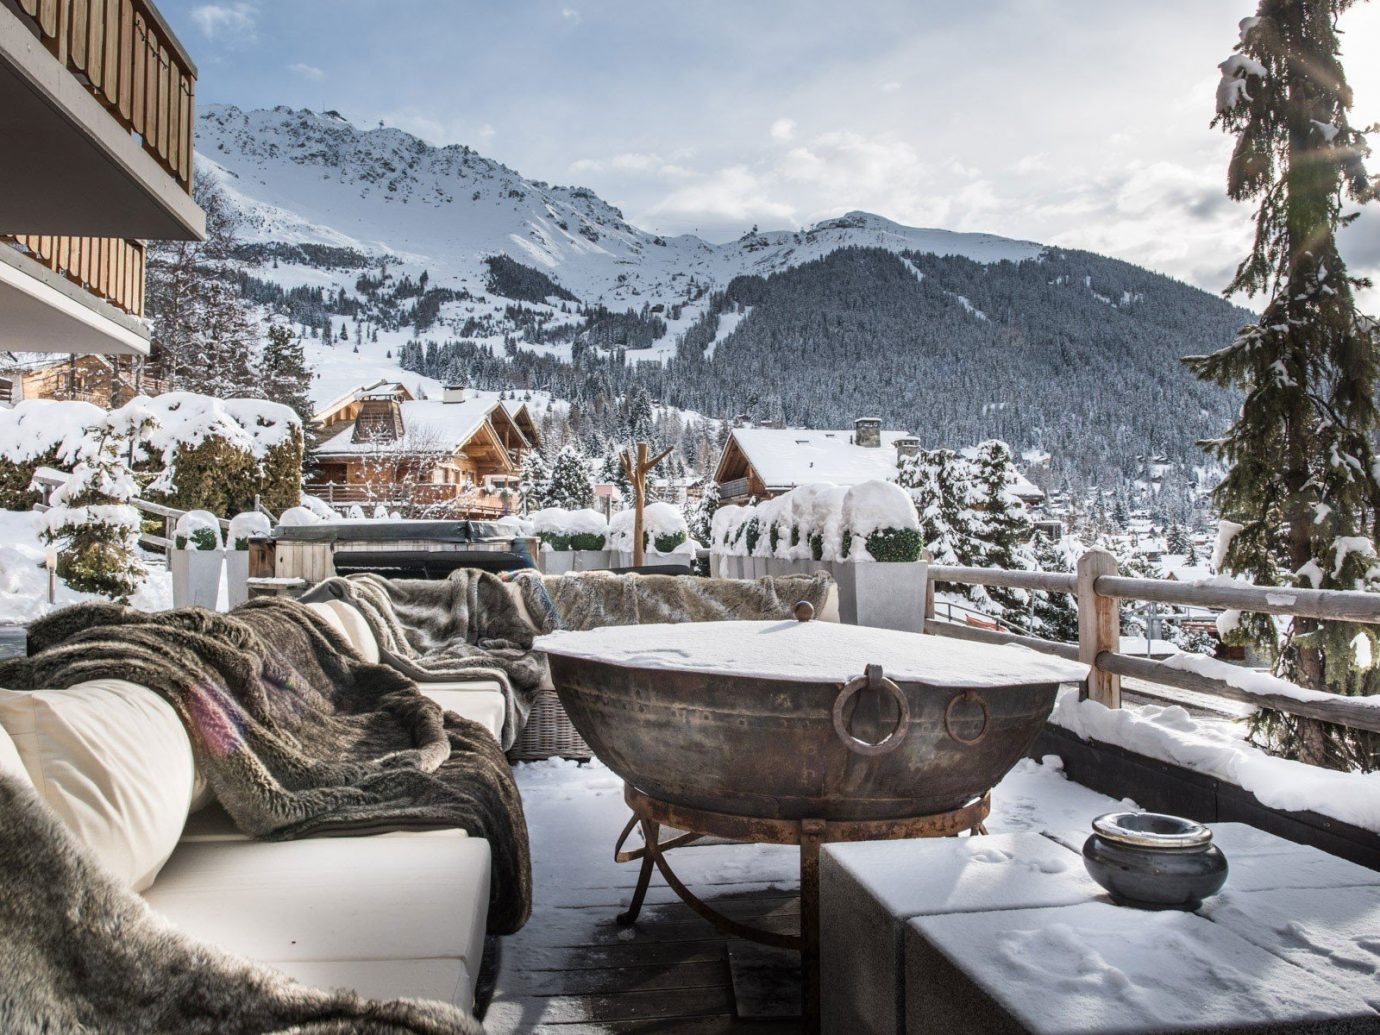 Hotels Luxury Travel Mountains + Skiing Trip Ideas sky outdoor snow Winter weather Resort season estate